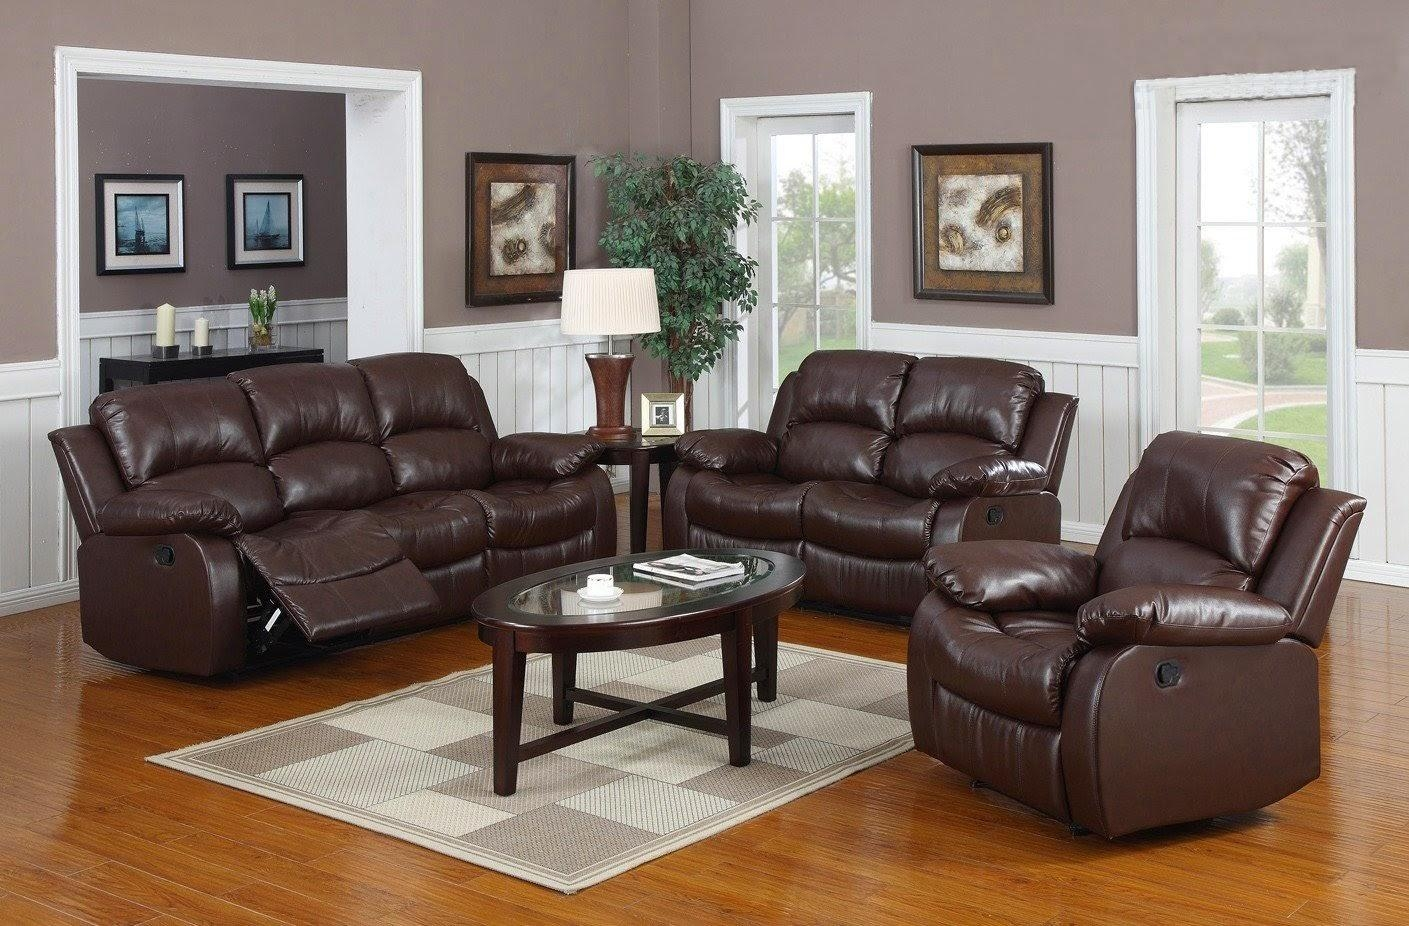 Sofas Center : Leather Sofa For Sale Manassasleather With Regard To Sofas Indianapolis (Image 11 of 20)